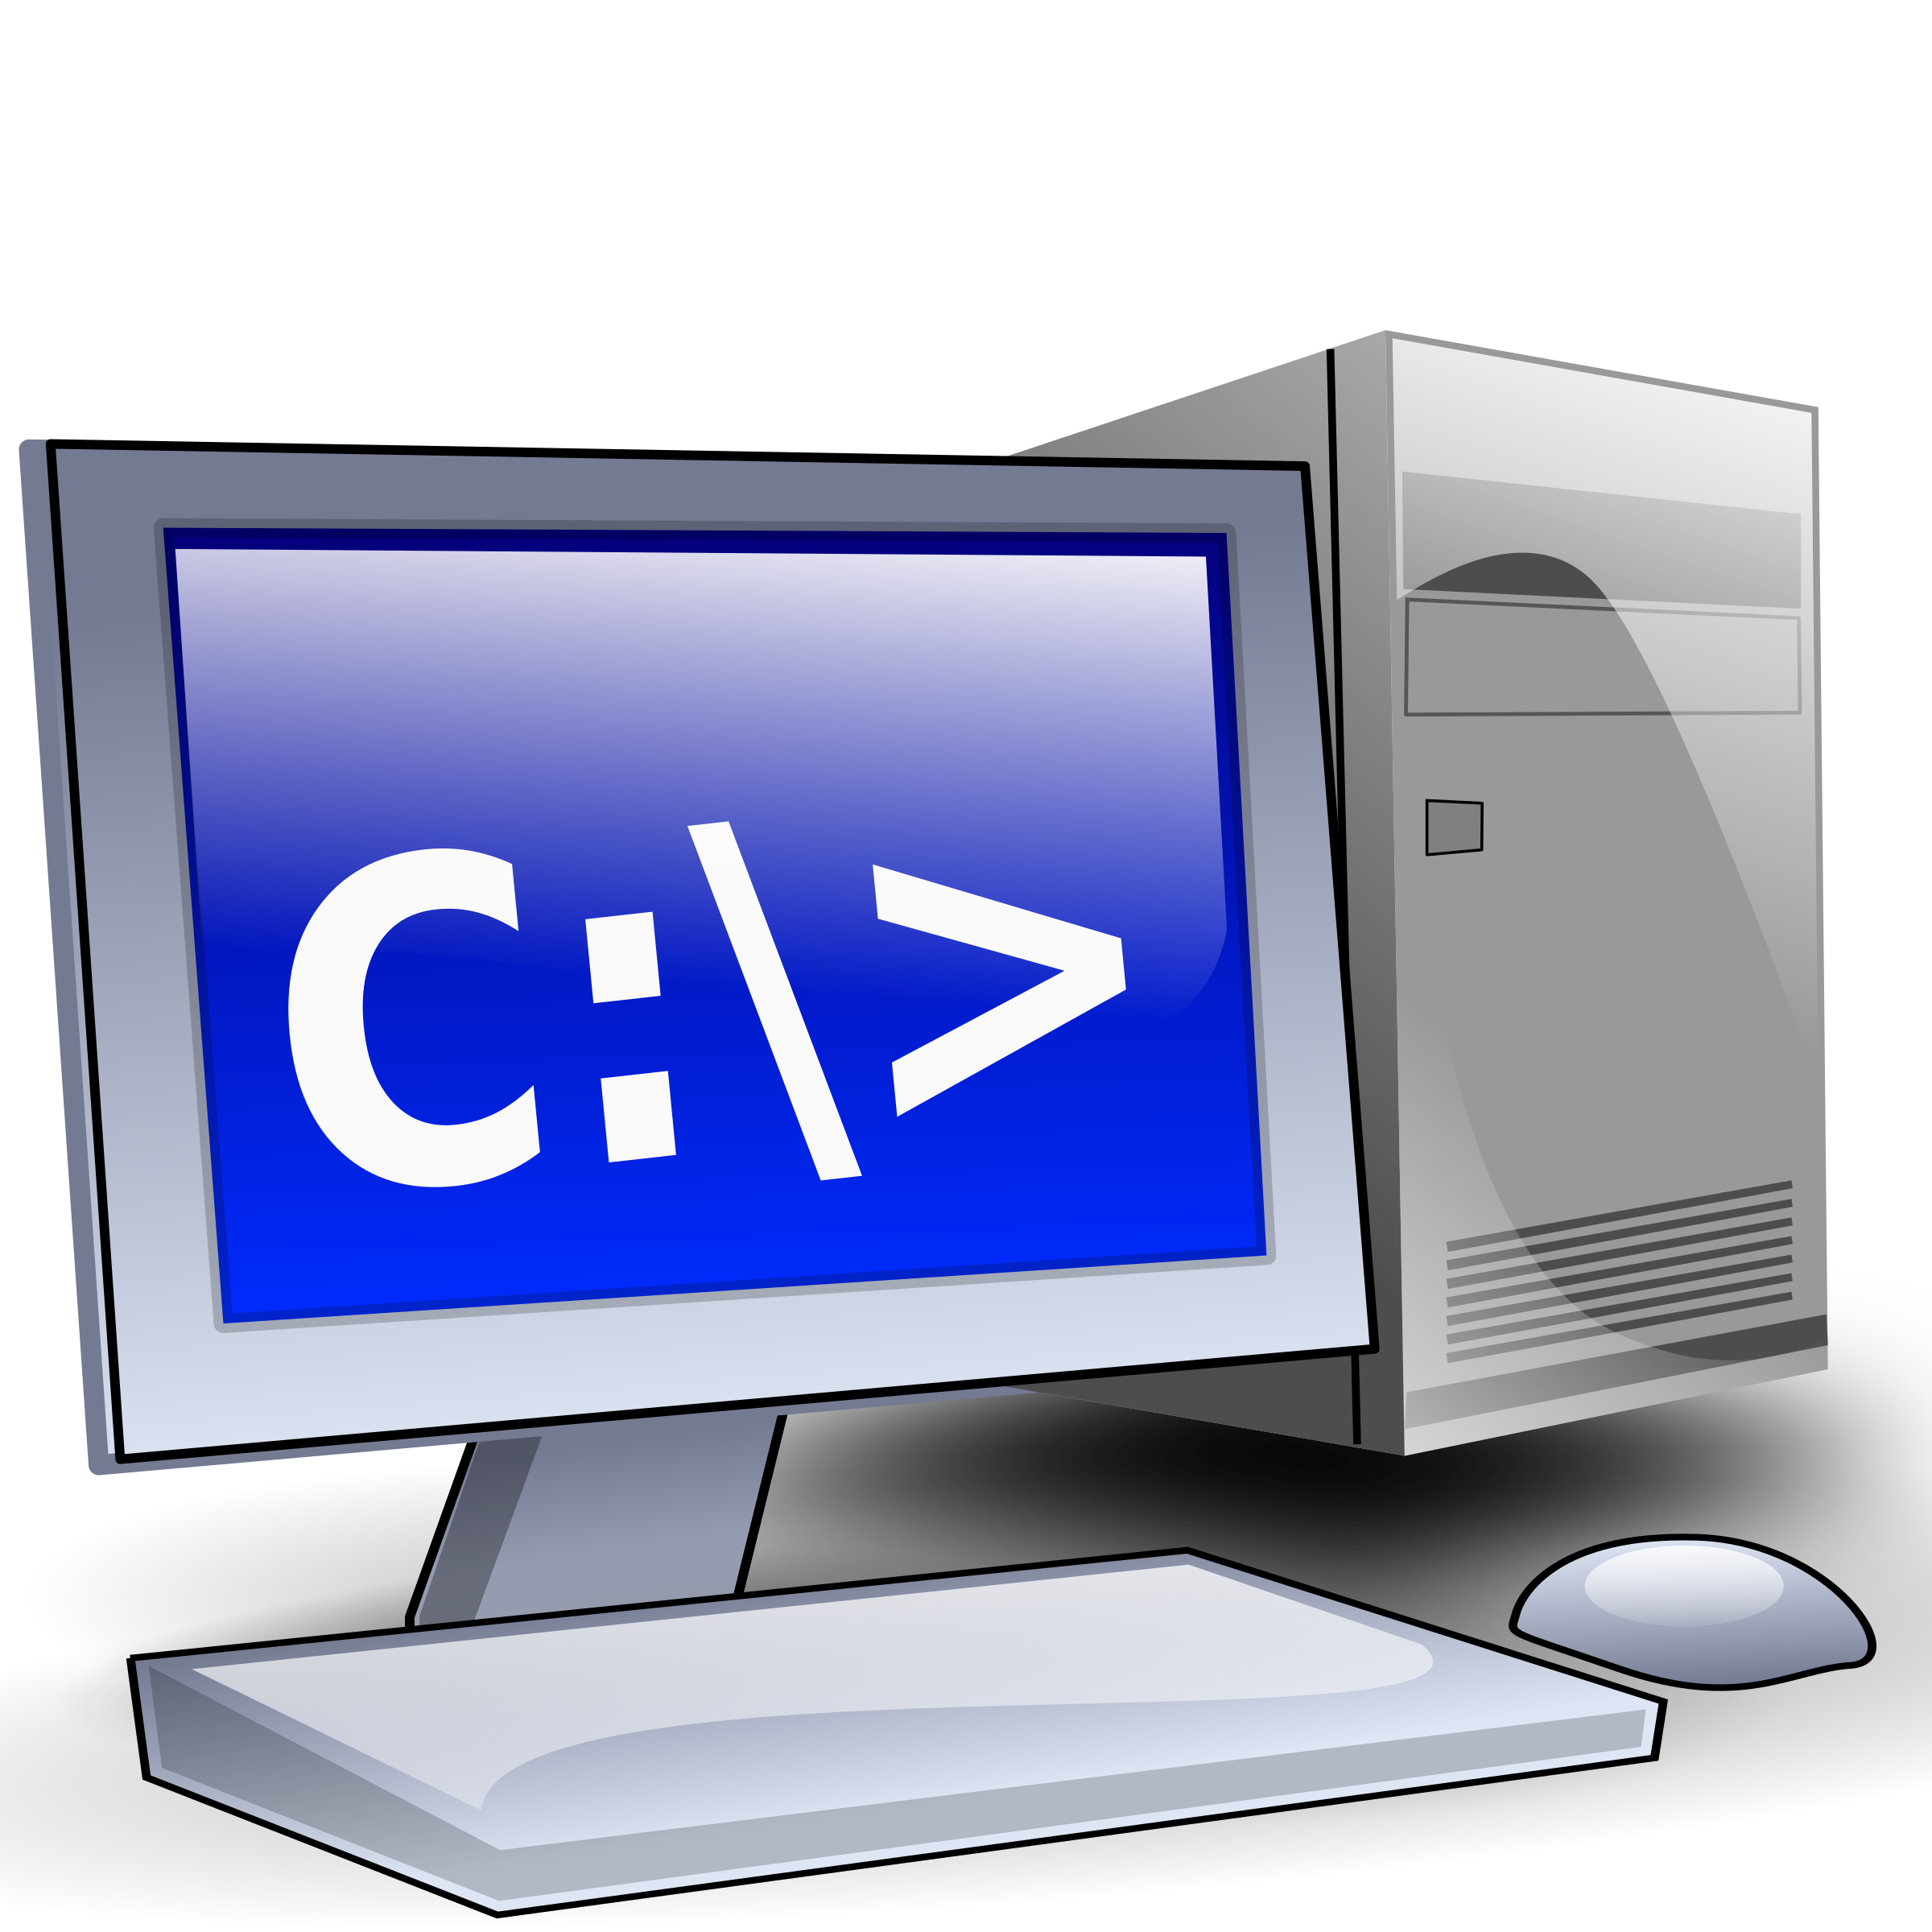 Pc clipart thin client. Computer big image png